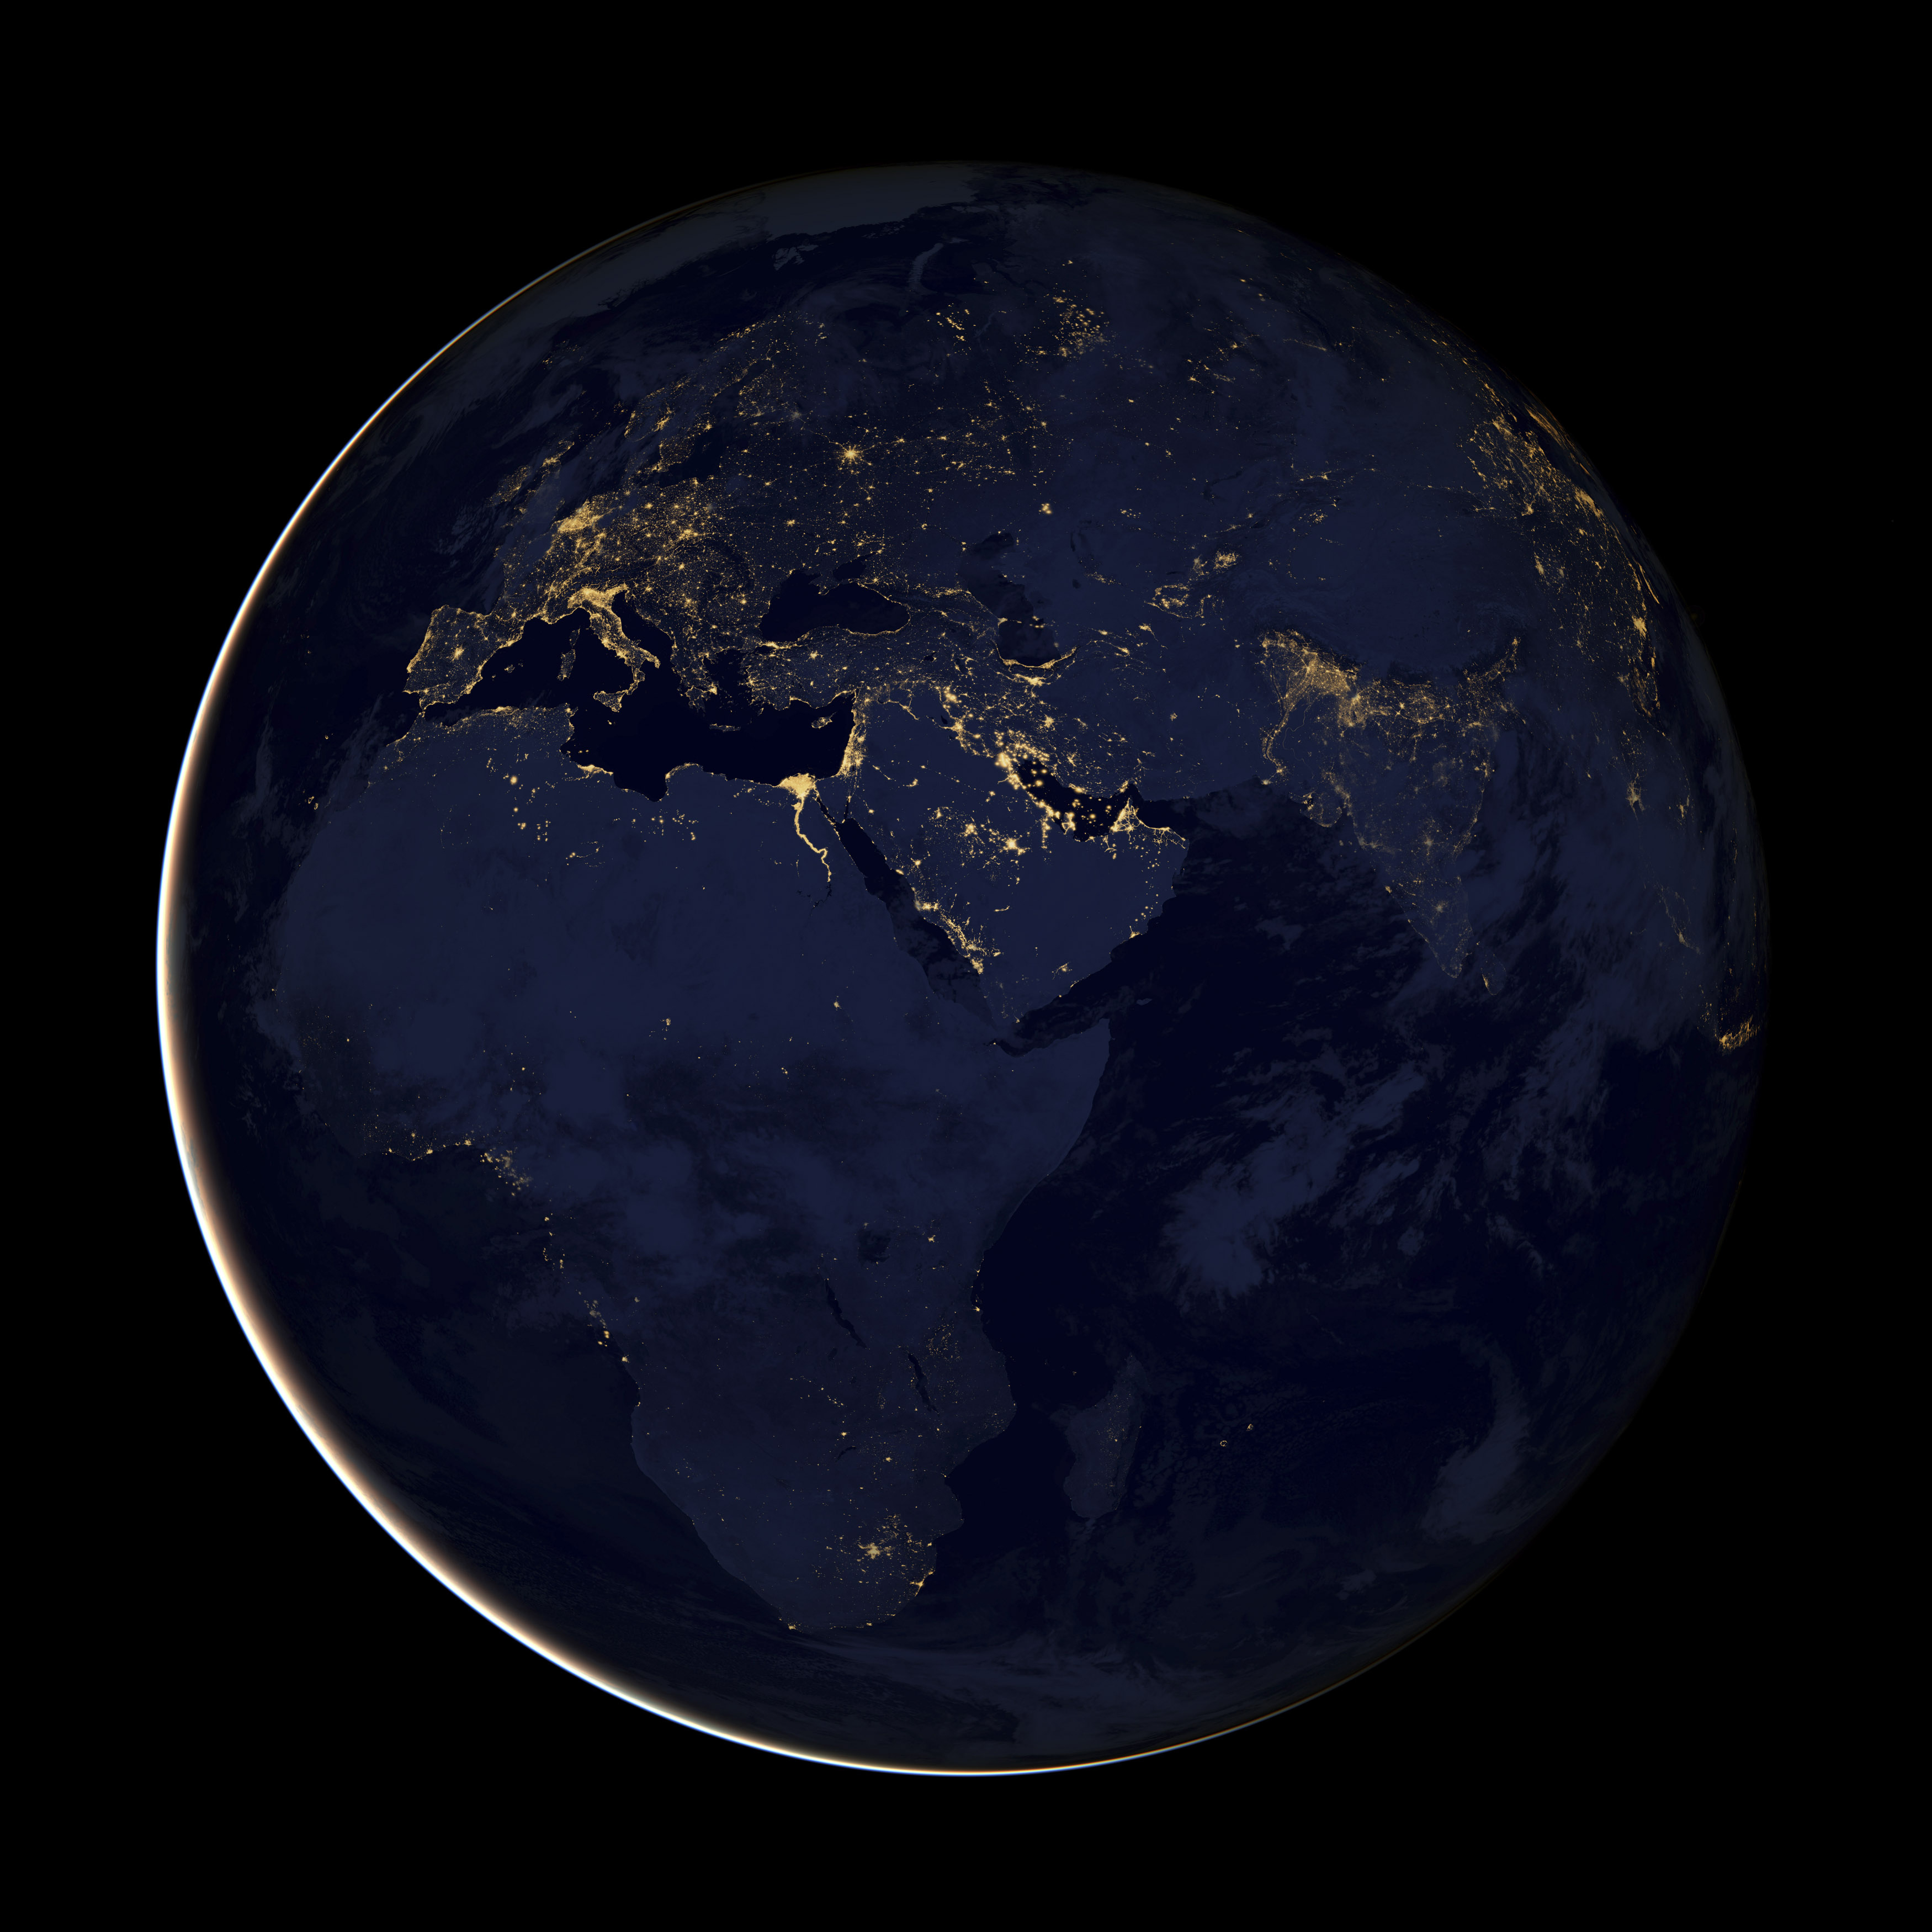 """A NASA Earth Observatory handout released December 5, 2012 of a composite image of Europe, Africa, and the Middle East at night, assembled from data acquired by the Suomi NPP satellite in April and October 2012. The image was made possible by the satellite's """"day-night band"""" of the Visible Infrared Imaging Radiometer Suite (VIIRS), which detects light in a range of wavelengths from green to near-infrared and uses filtering techniques to observe dim signals such as city lights, gas flares, auroras, wildfires and reflected moonlight. REUTERS/NASA Earth Observatory/Handout (SCIENCE TECHNOLOGY ENVIRONMENT) FOR EDITORIAL USE ONLY. NOT FOR SALE FOR MARKETING OR ADVERTISING CAMPAIGNS. THIS IMAGE HAS BEEN SUPPLIED BY A THIRD PARTY. IT IS DISTRIBUTED, EXACTLY AS RECEIVED BY REUTERS, AS A SERVICE TO CLIENTS - GF2E8C51UIA01"""